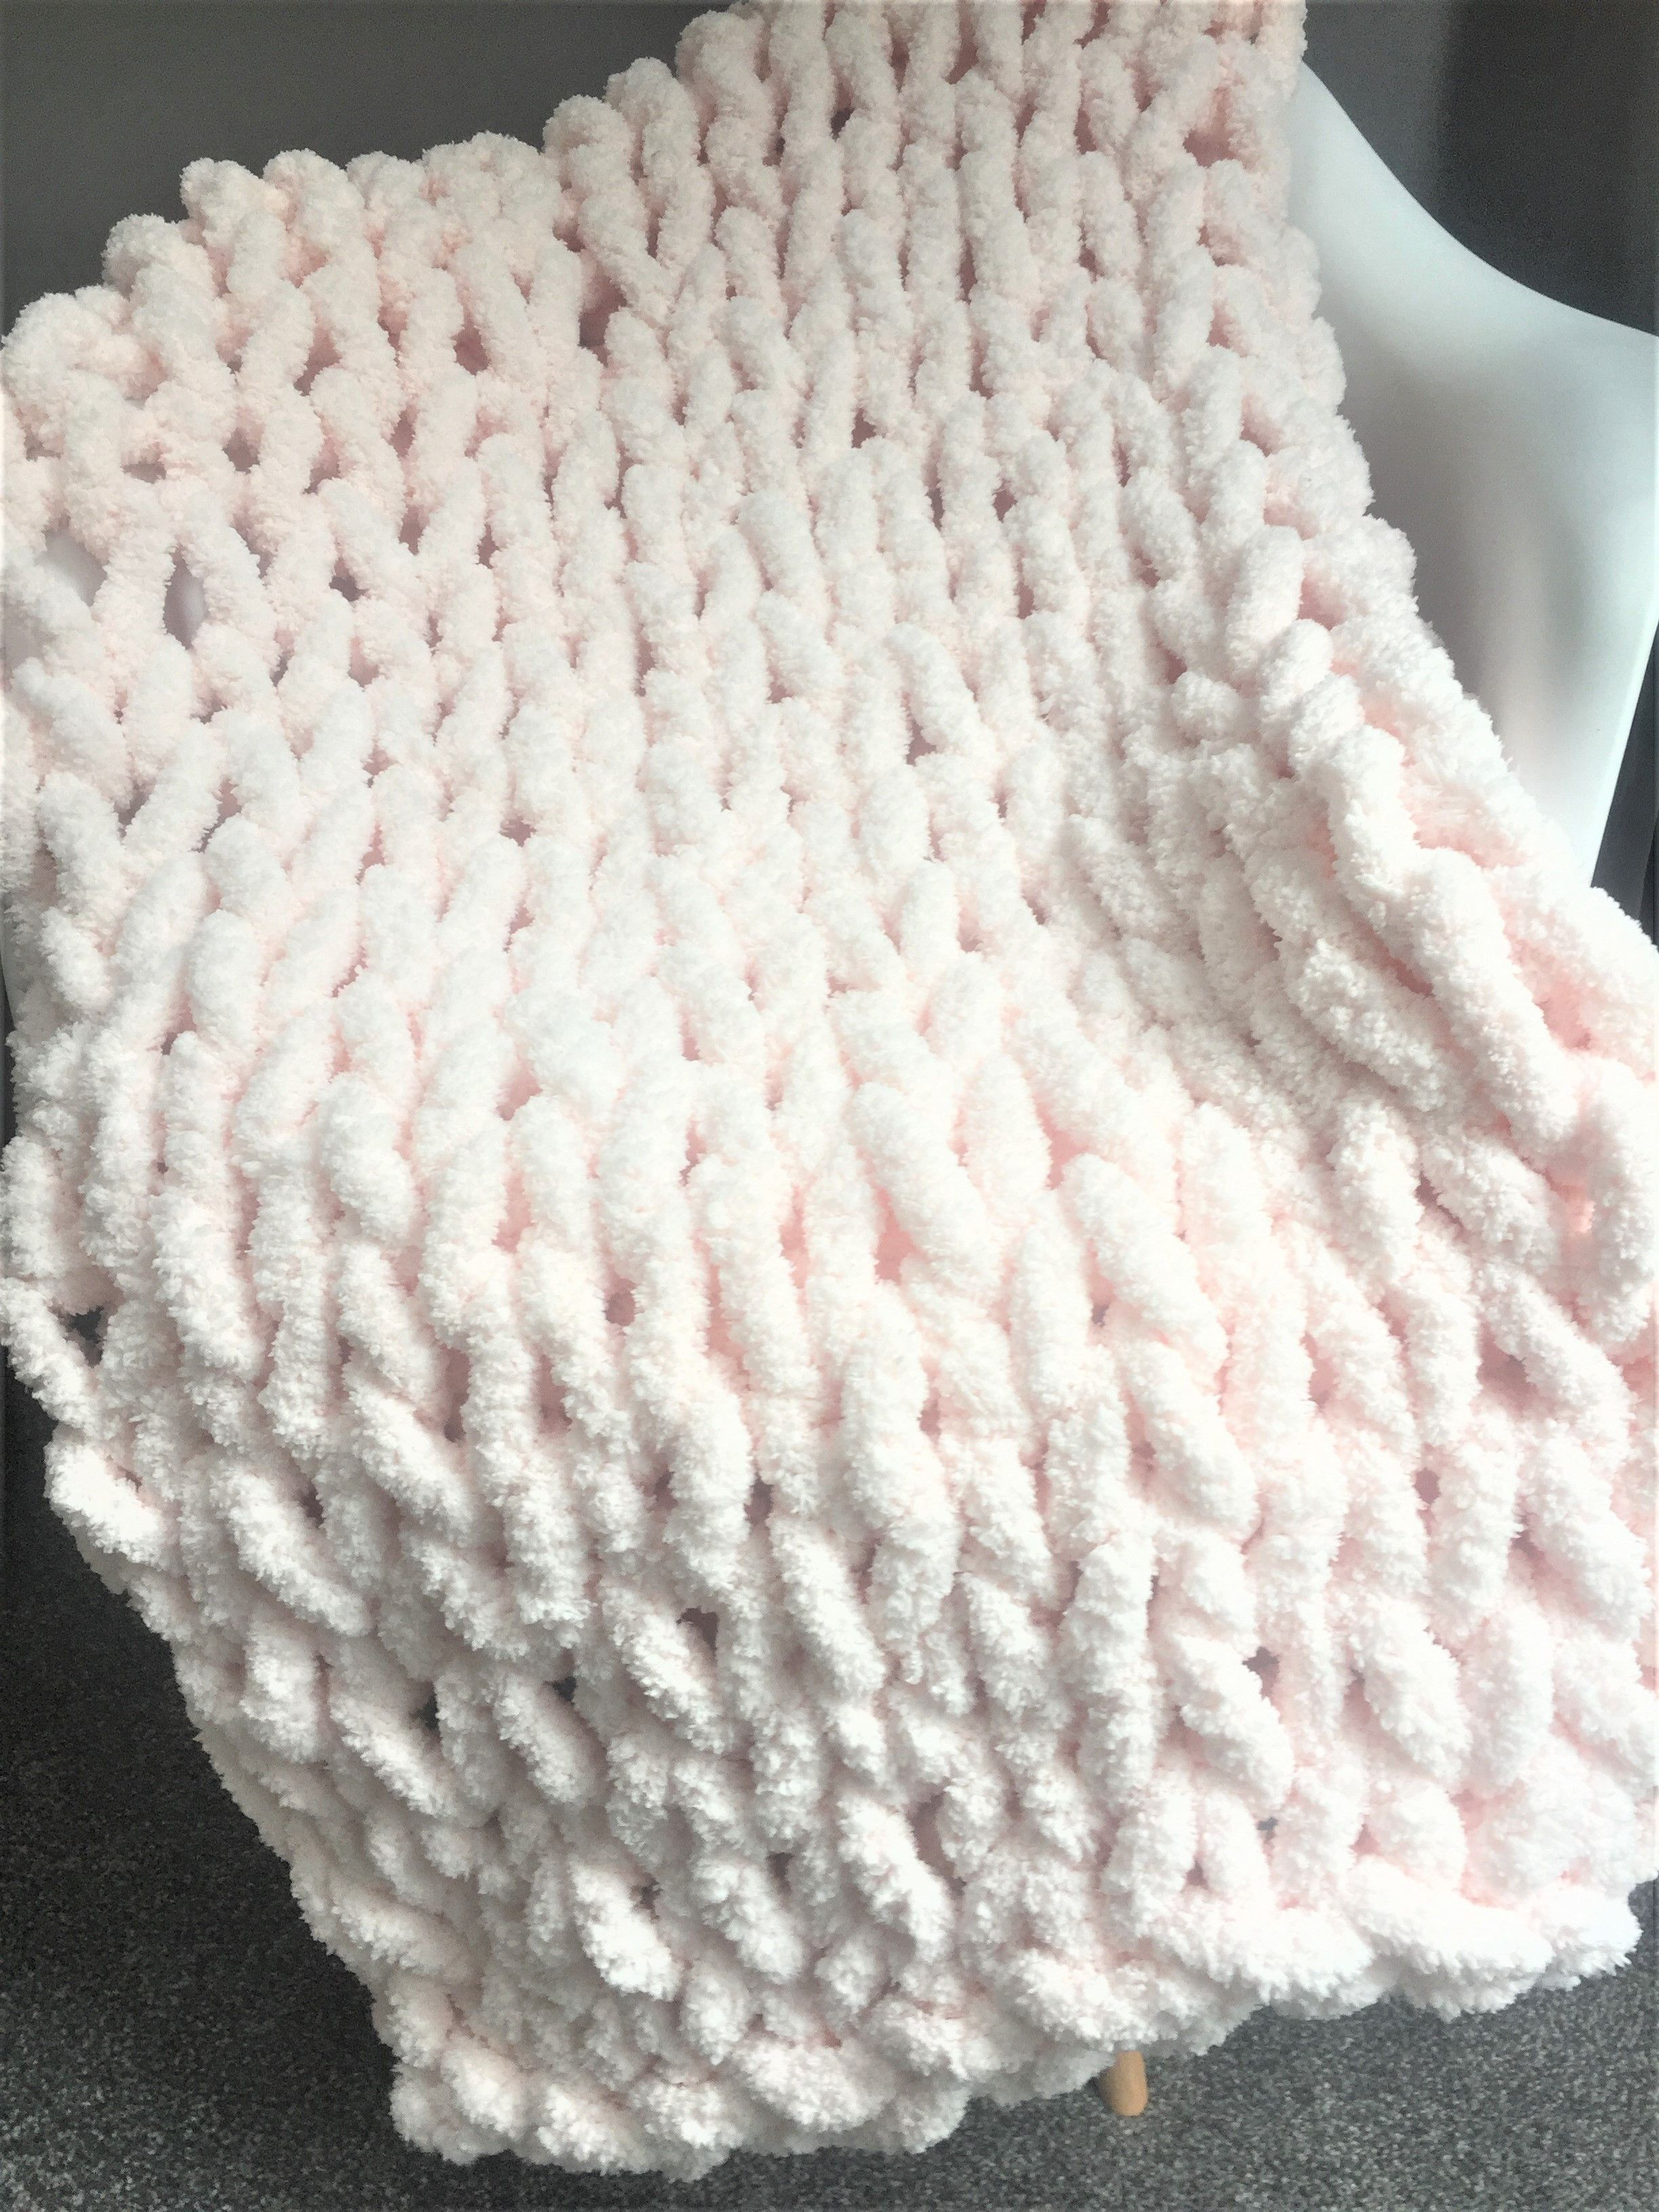 Chunky Chenille Yarn Blanket | We wants it! | Chunky yarn blanket